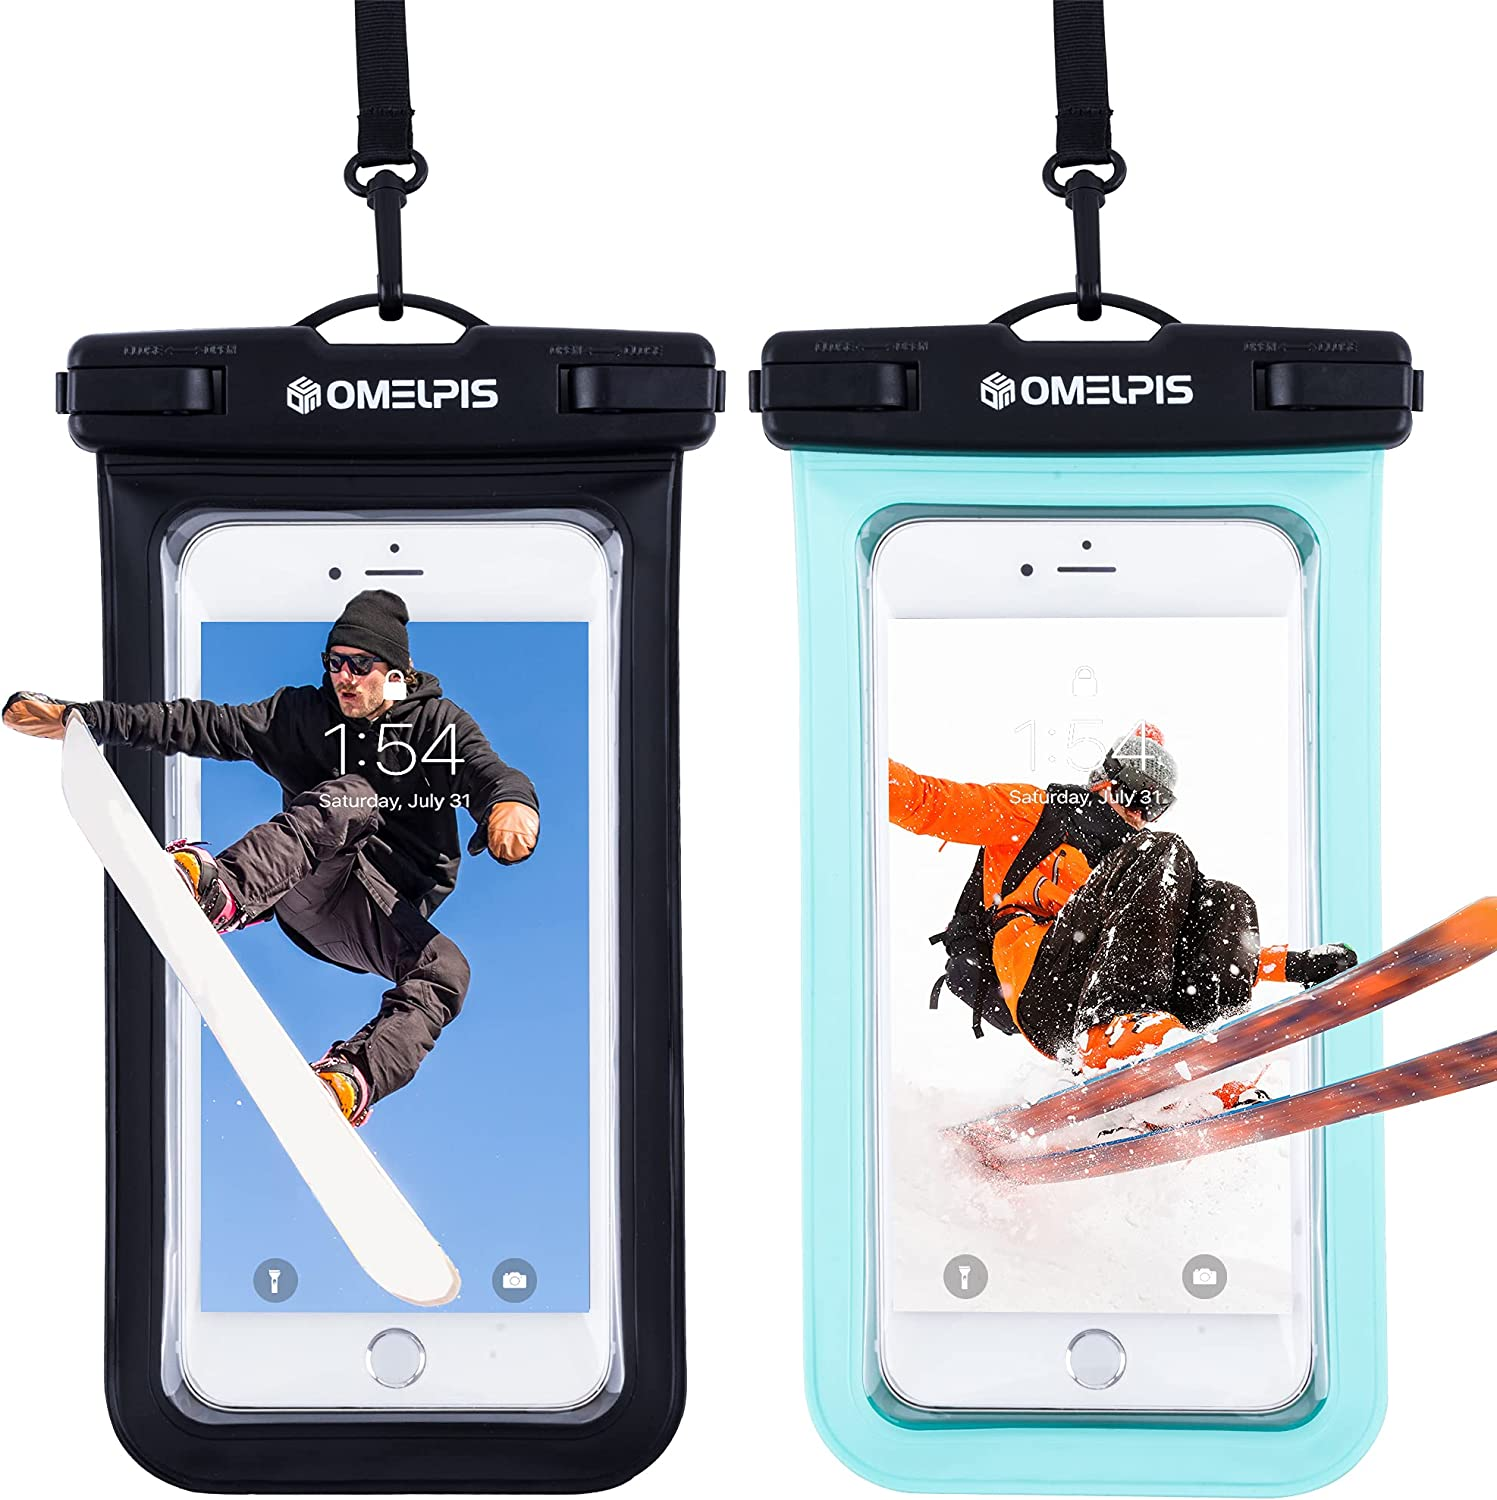 OMELPIS Universal Waterproof Phone Pouch, Waterproof Case for iPhone 11 12 Mini Pro Max X 6 Plus, Motorola, All Devices up to 7'', Cellphone Underwater Dry Bag for Skiing/Surfing/Beach -2 Pack